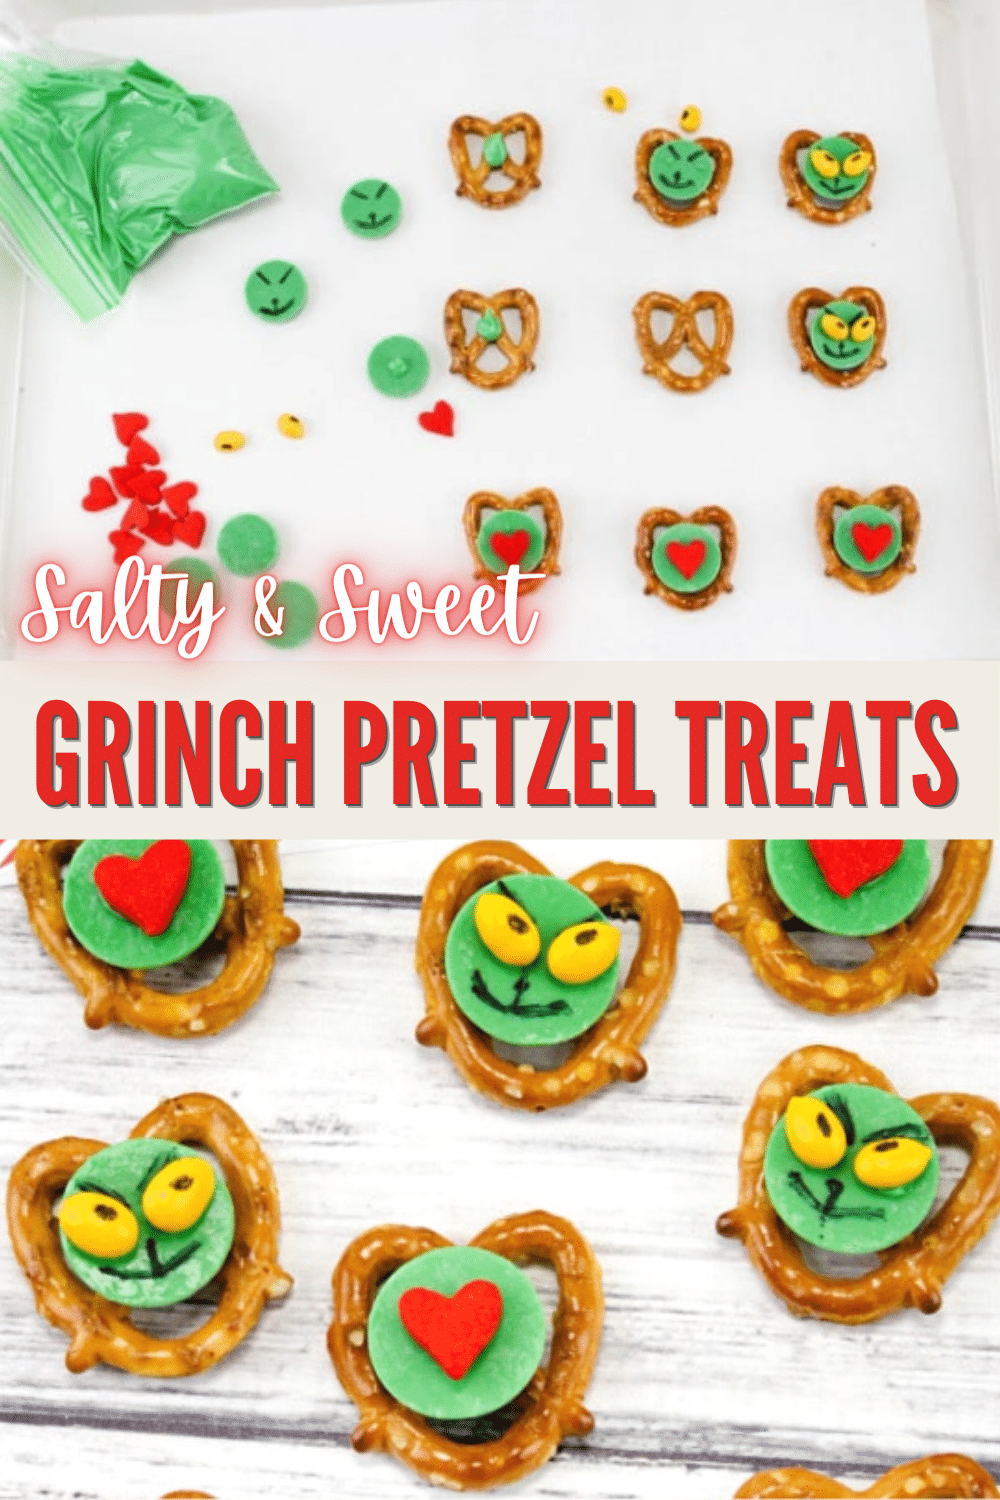 """I'm definitely making up a batch of these Grinch Pretzel Treats to snack on while watching """"The Grinch Who Stole Christmas."""" Adorable! And so easy to make too! #thegrinch #funfood #Christmastreats via @wondermomwannab"""